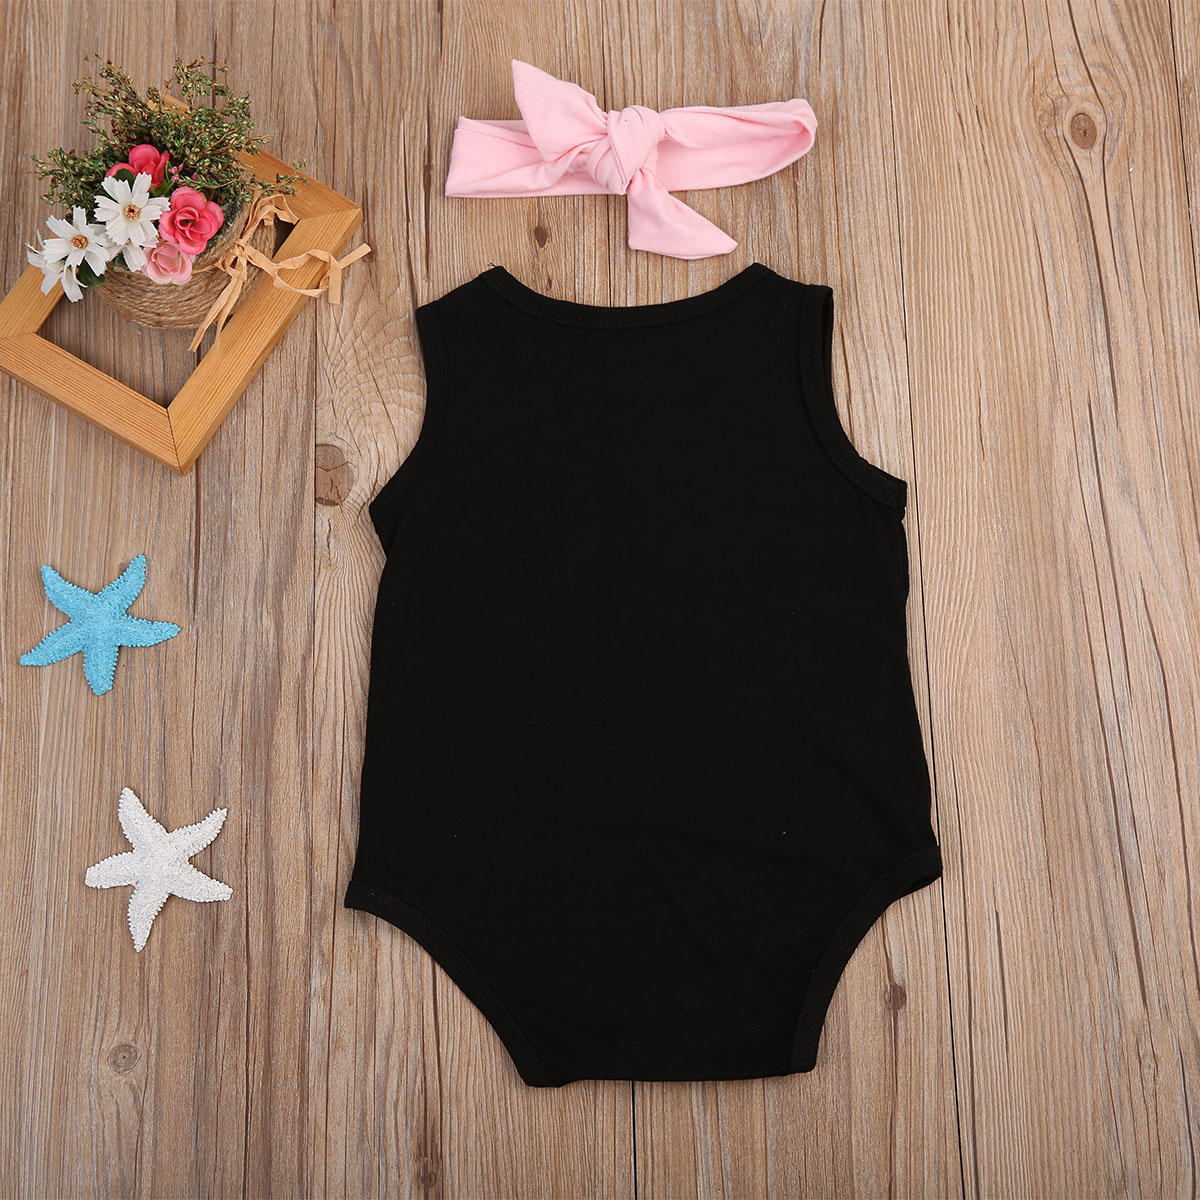 2pcs Baby Girls Floral Letter Printed Romper Sleeveless Jumpsuit + Headband Sunsuit Outfit Set 0-24M